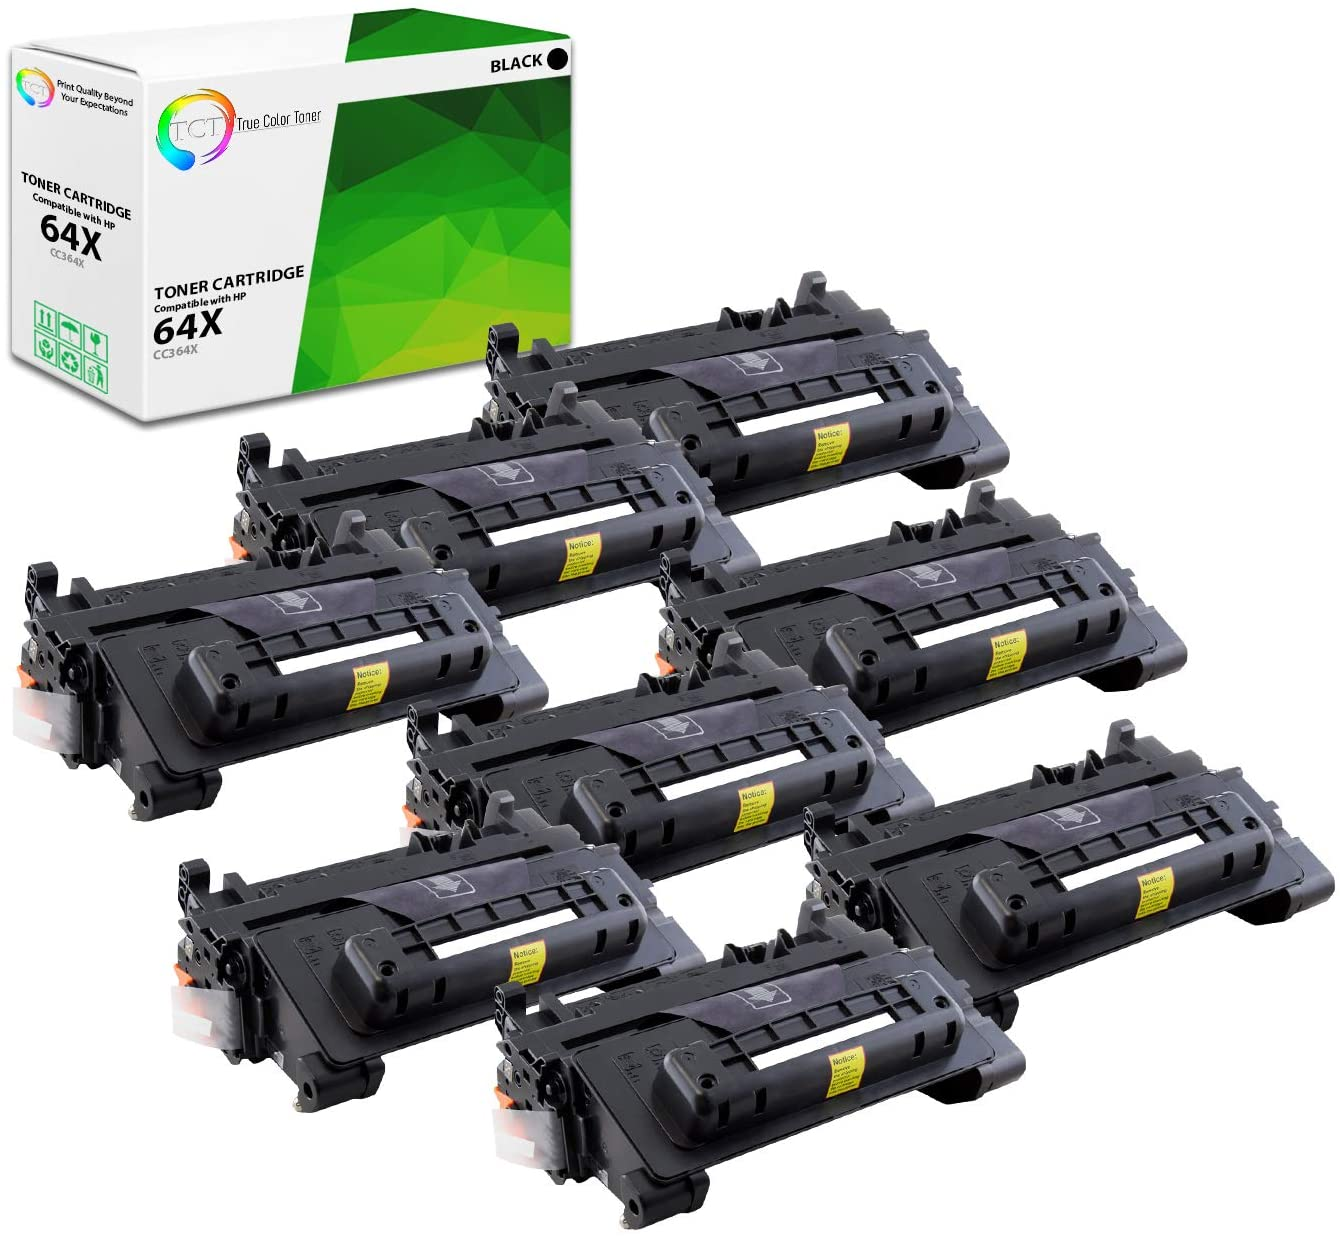 TCT Premium Compatible Toner Cartridge Replacement for HP 64X CC364X Black High Yield Works with HP Laserjet P4014 P4015N P4015X P4515N P4515X Printers (24,000 Pages) - 8 Pack